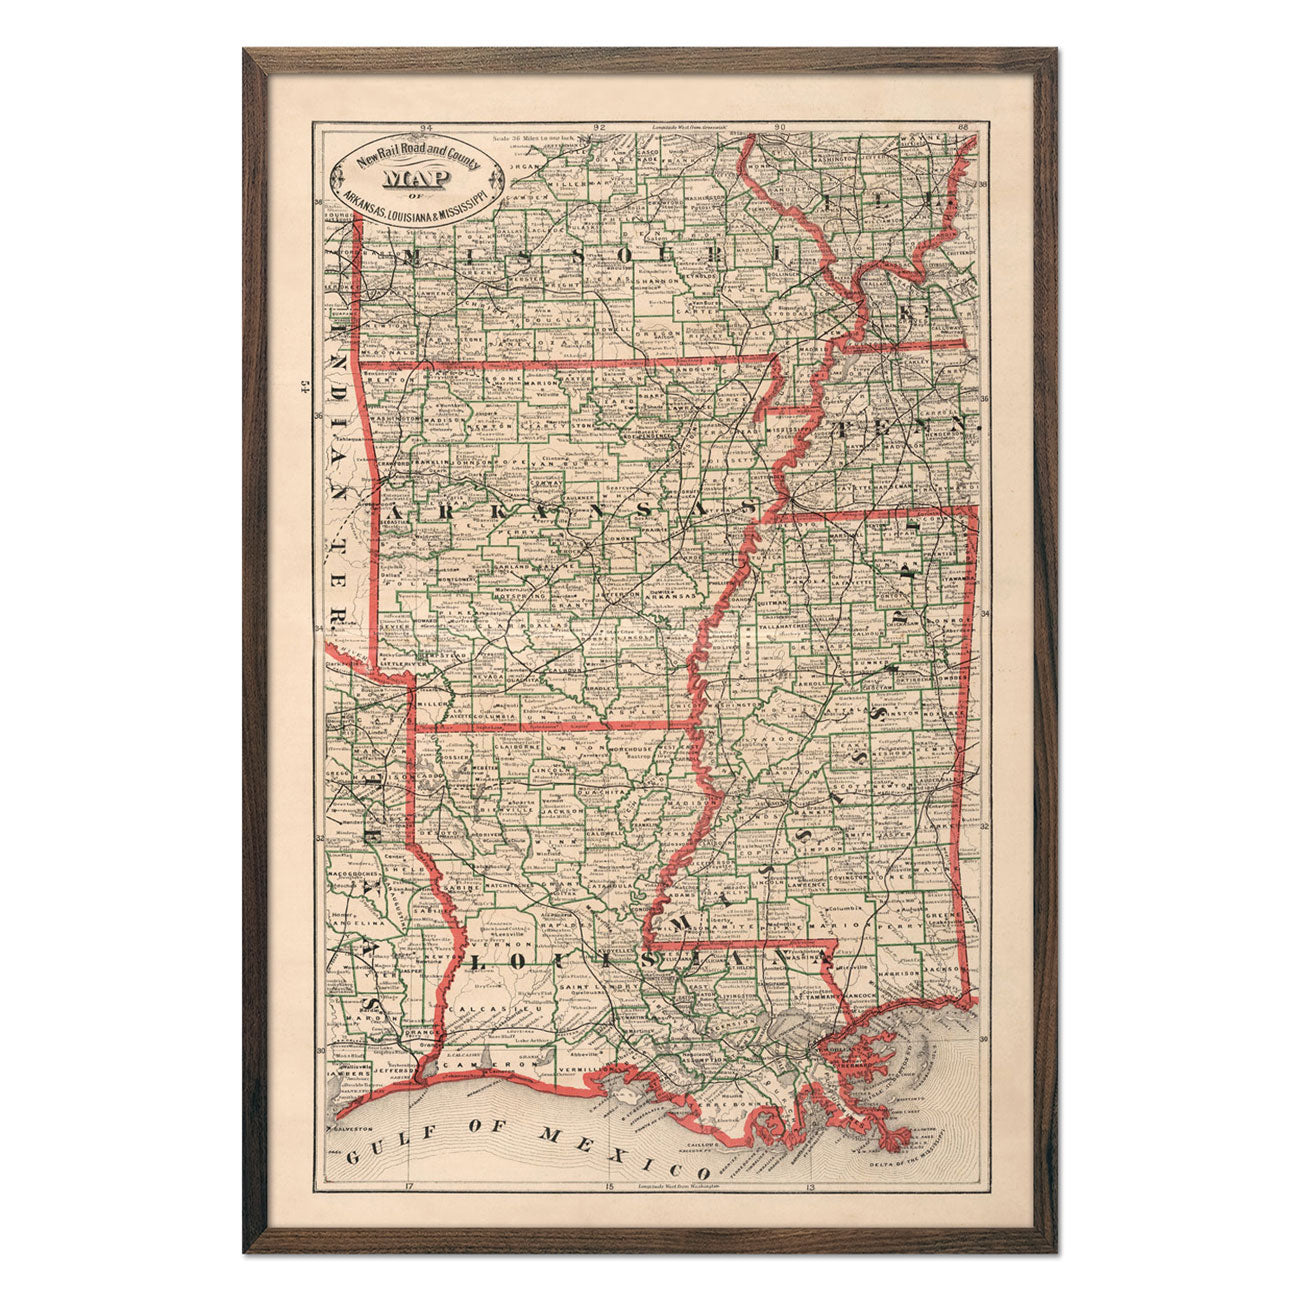 Vintage Map of Arkansas, Louisiana and Mississippi 1883